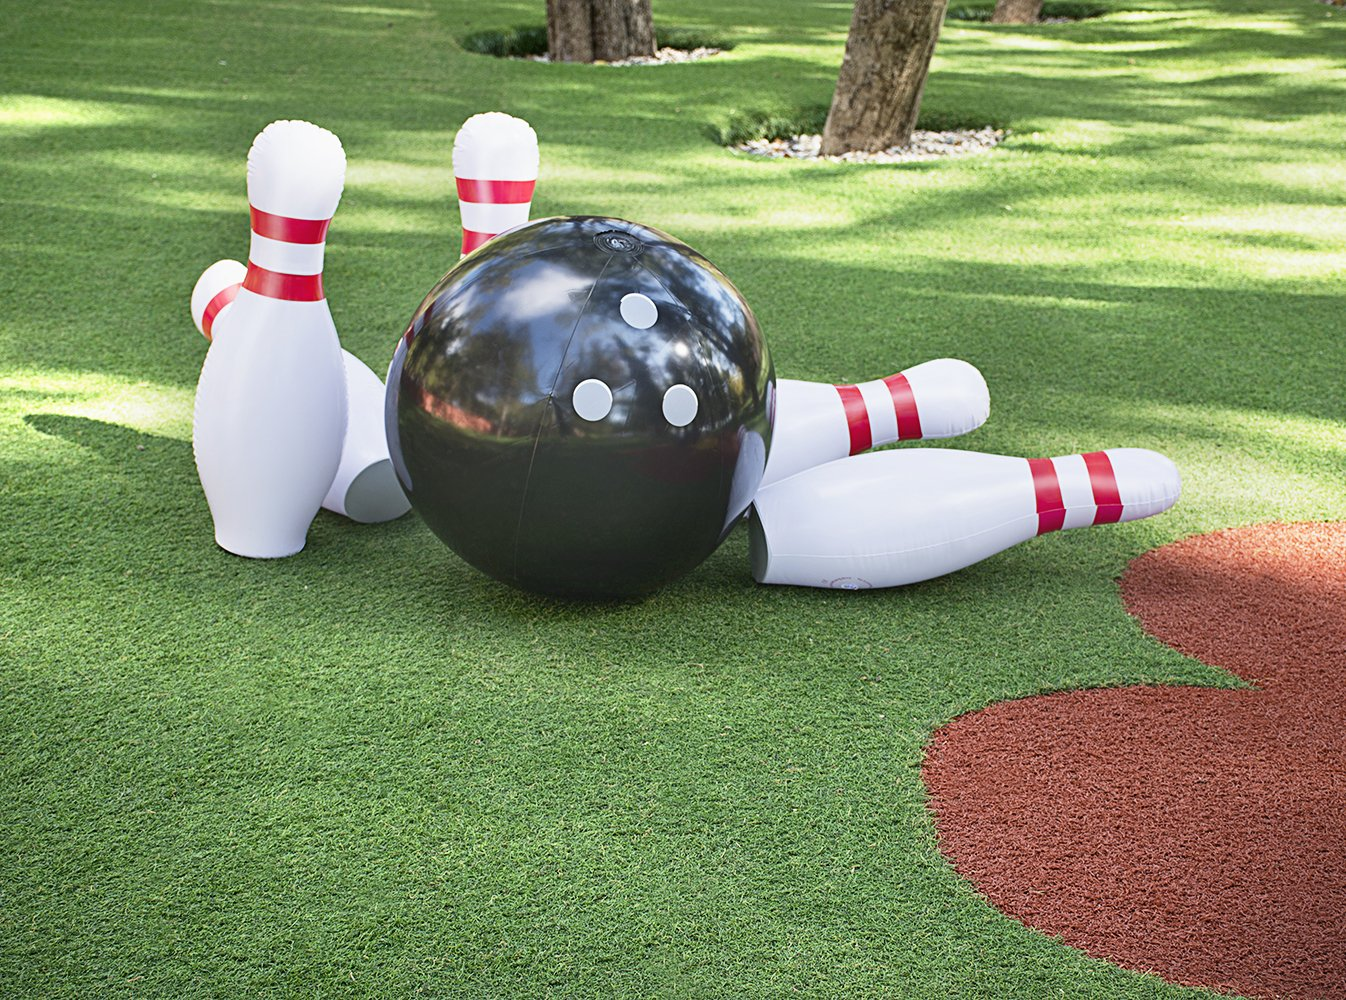 Inflatable Bowling Ball Set – Ideal Fun Game for Kids & Adults, Family Parties & Picnics – Outdoor or Indoor - Stable & Durable – Perfect Size – Includes 1 Ball & 6 Pins by ABCO TECH (Image #2)